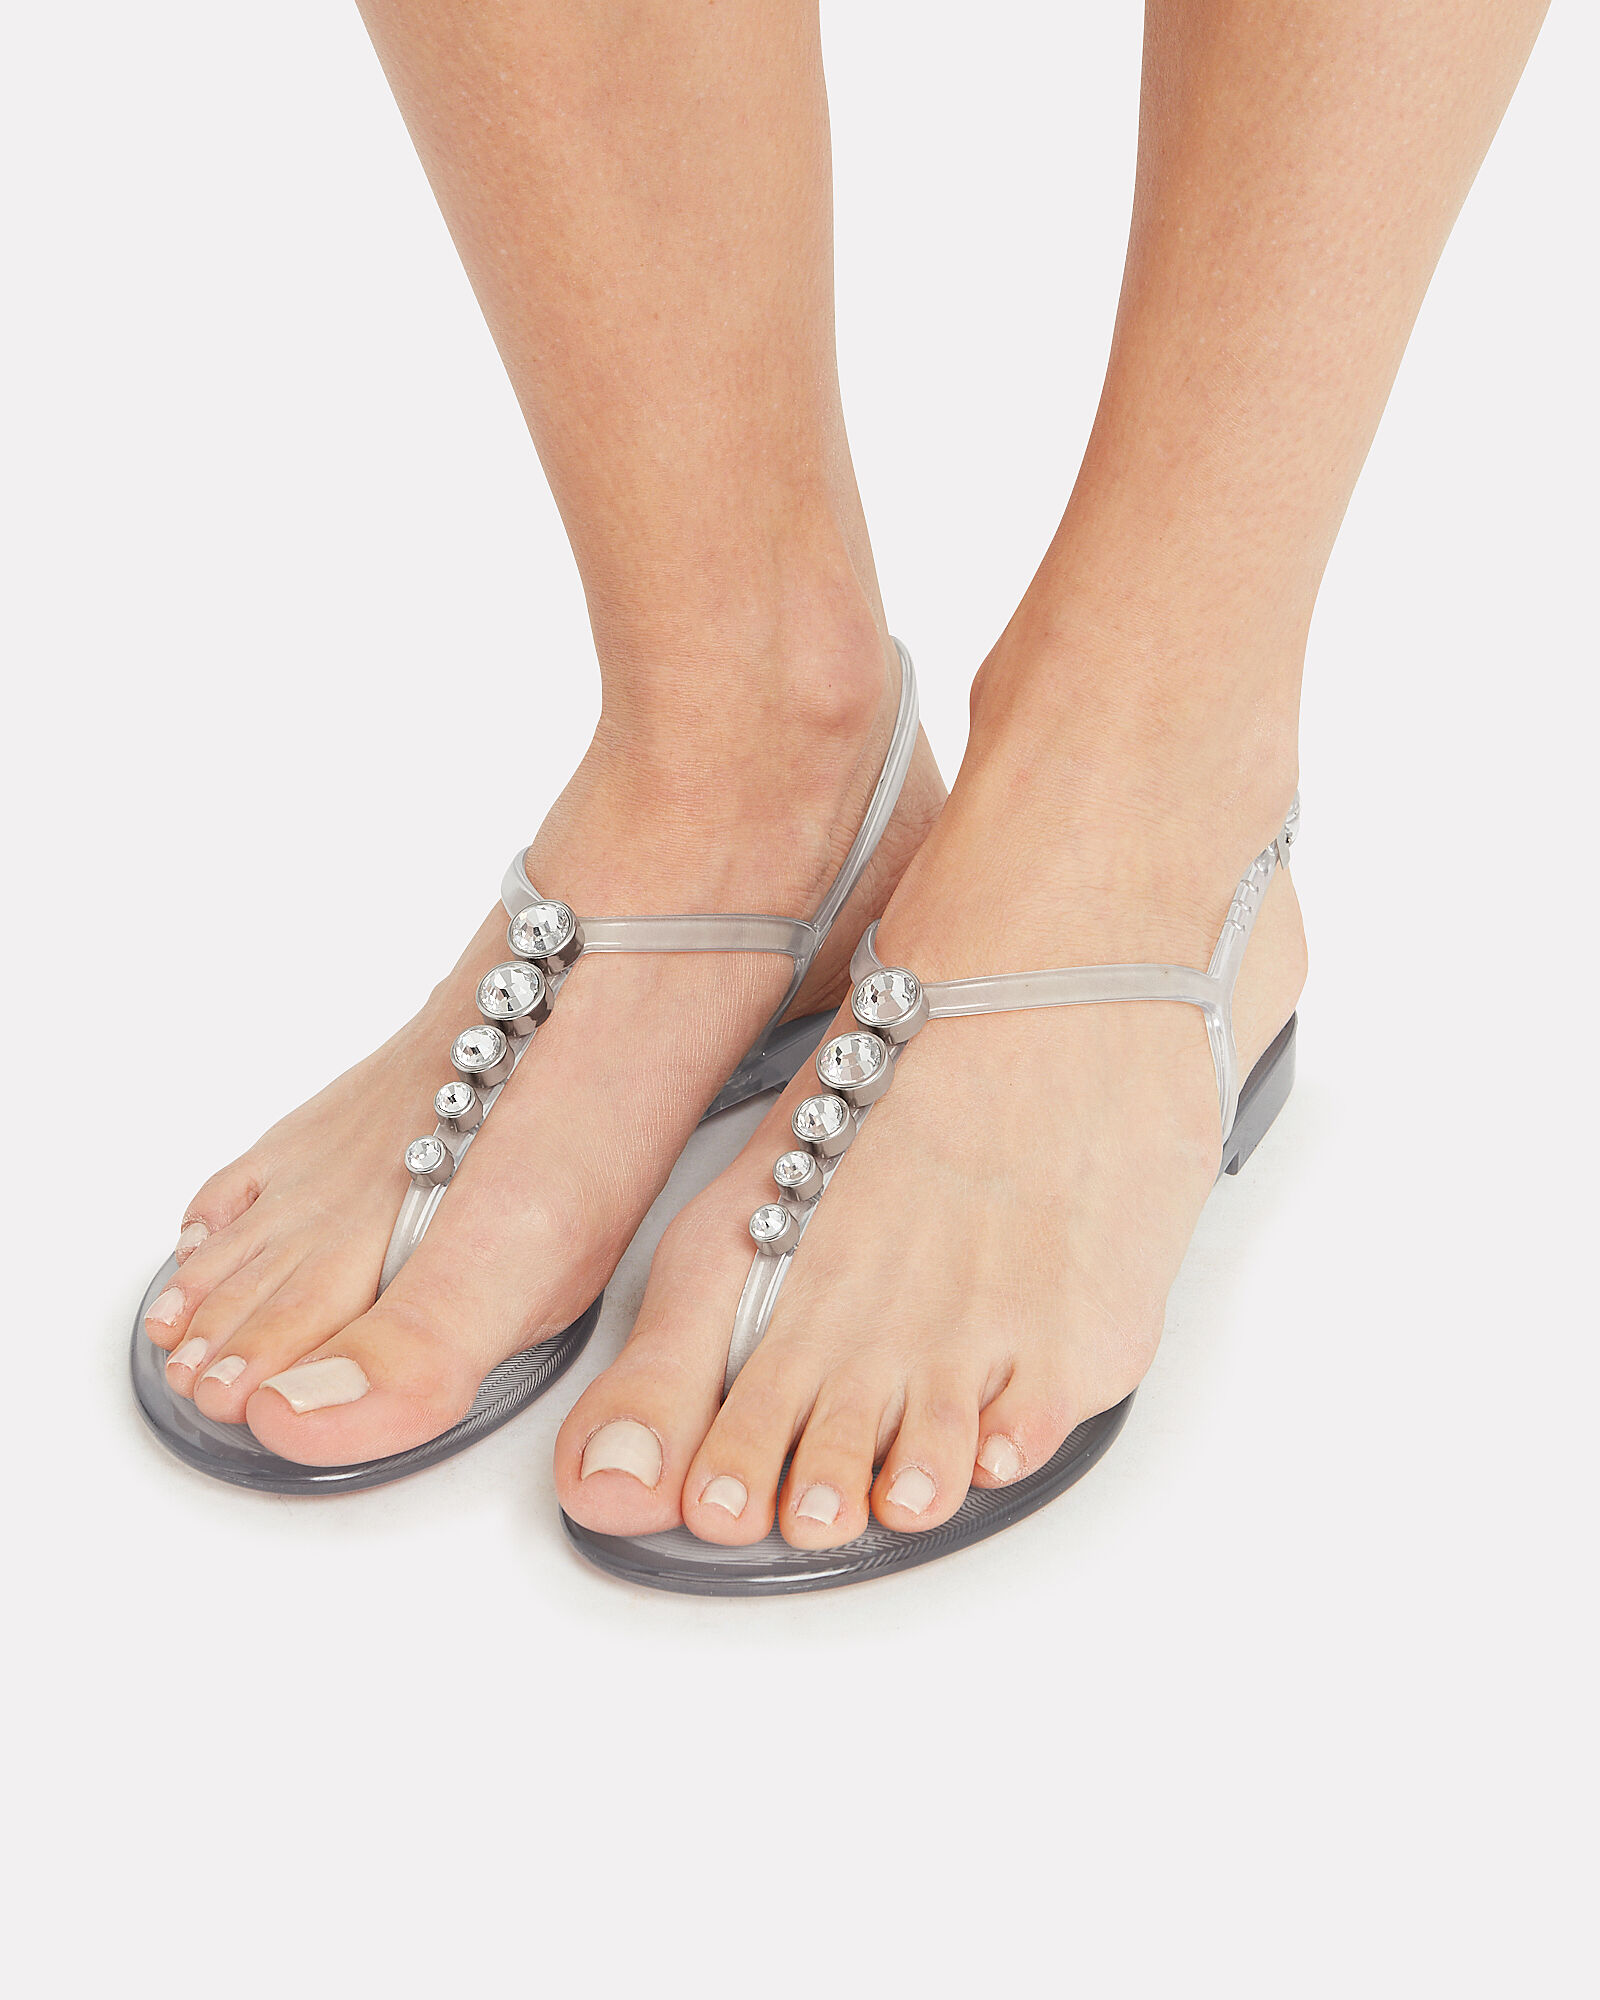 Crystal Jelly Sandals, CLEAR, hi-res